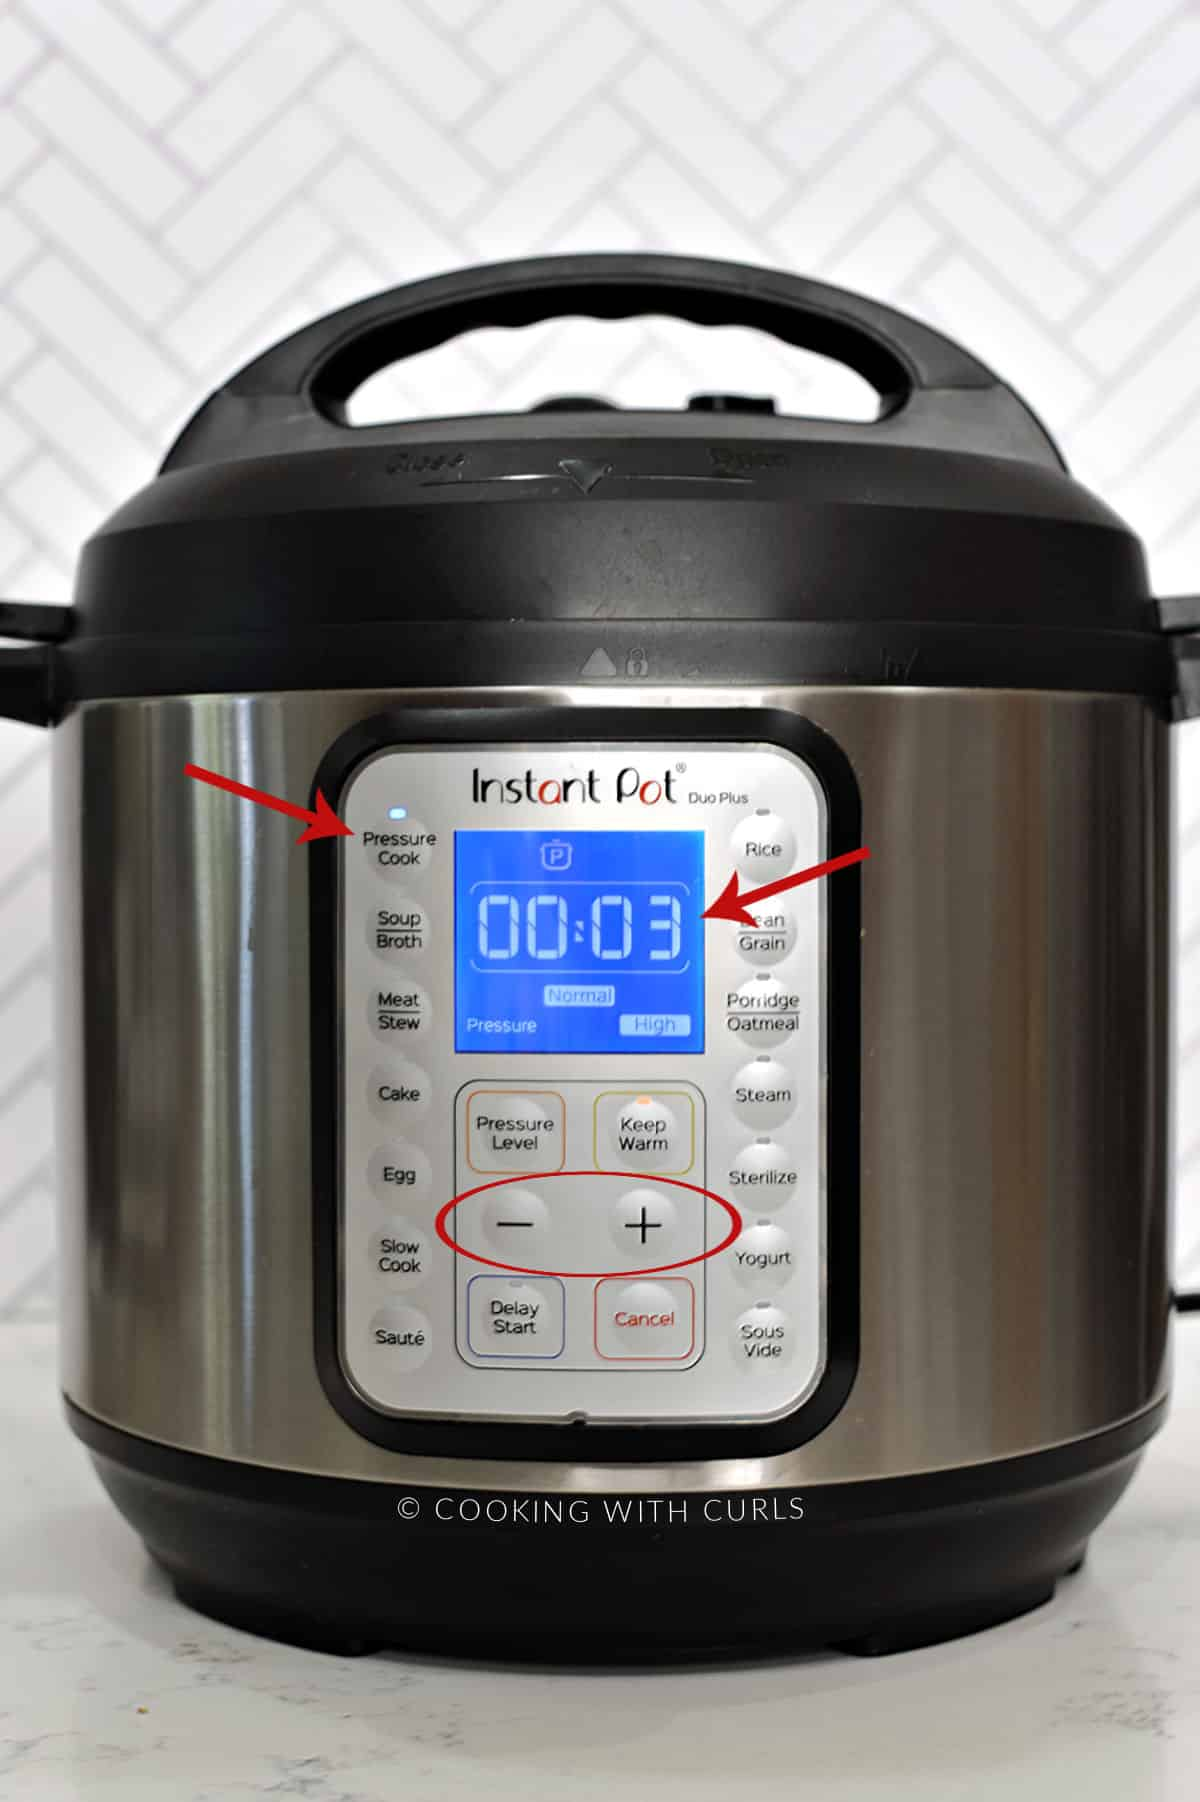 Instant Pot set to 3 minutes on high pressure with a red arrow pointing towards the pressure cook button and circle around the + and - buttons.